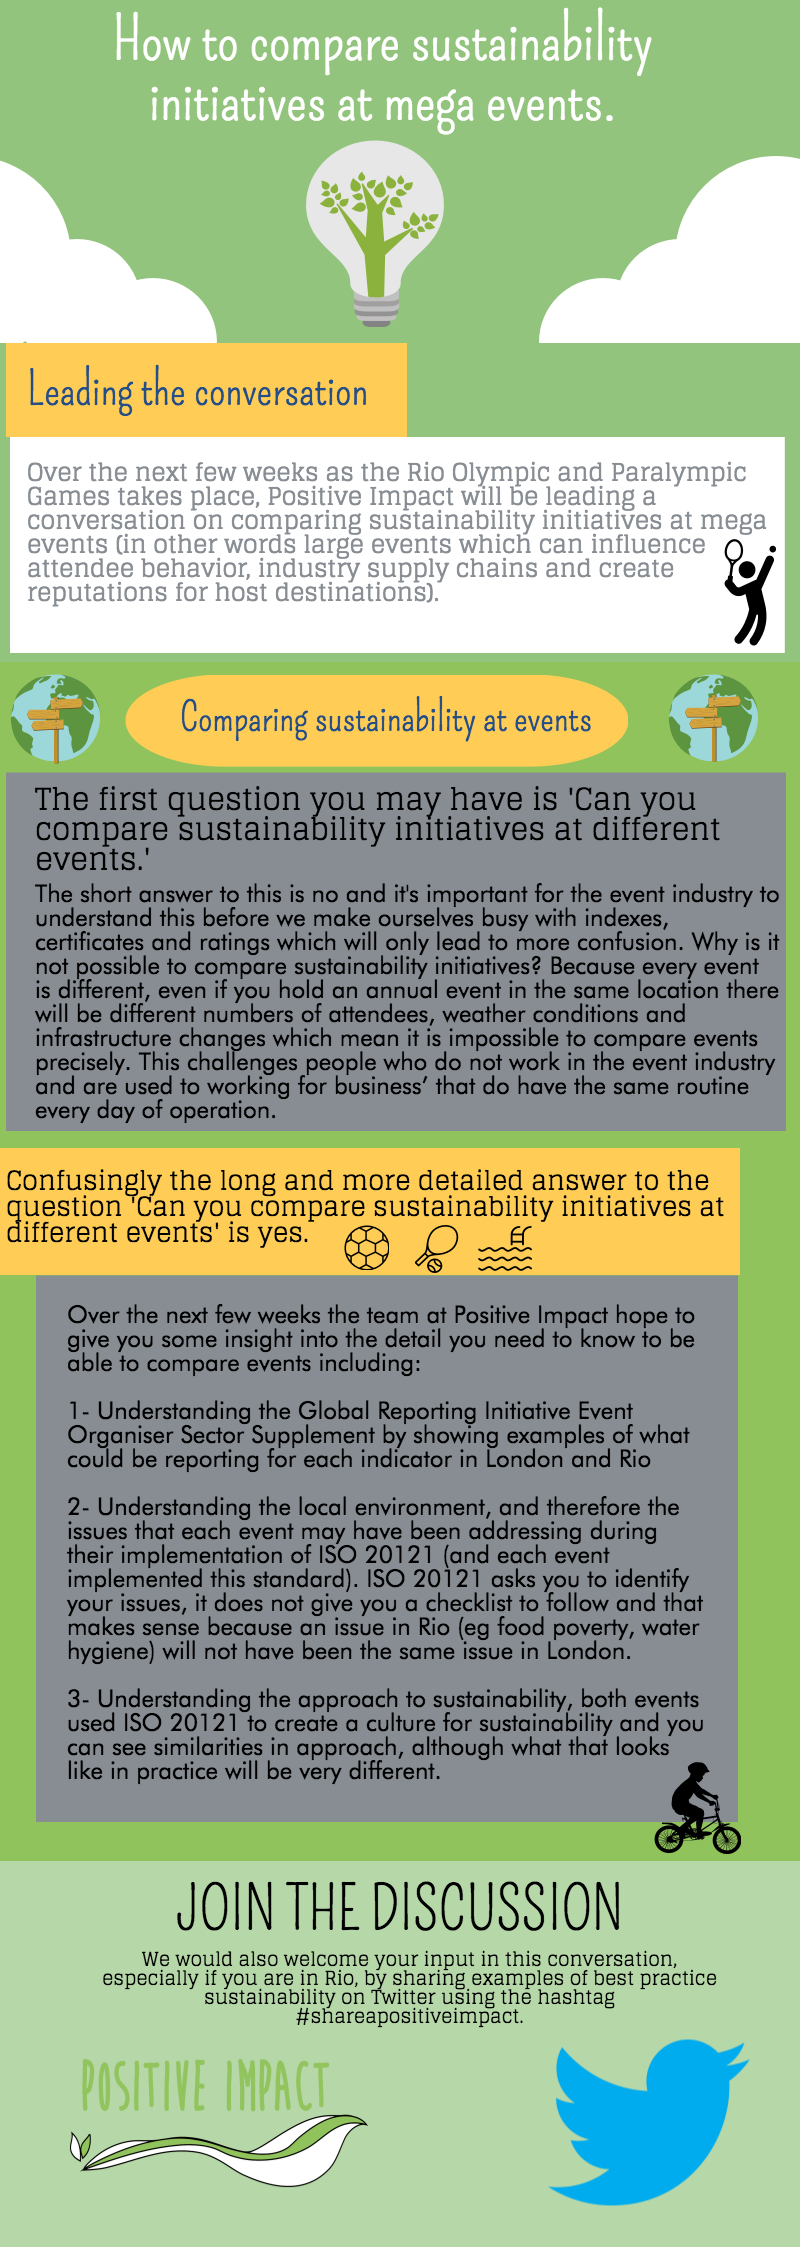 how-to-compare-sustainability-initiatives-at-mega-events.png